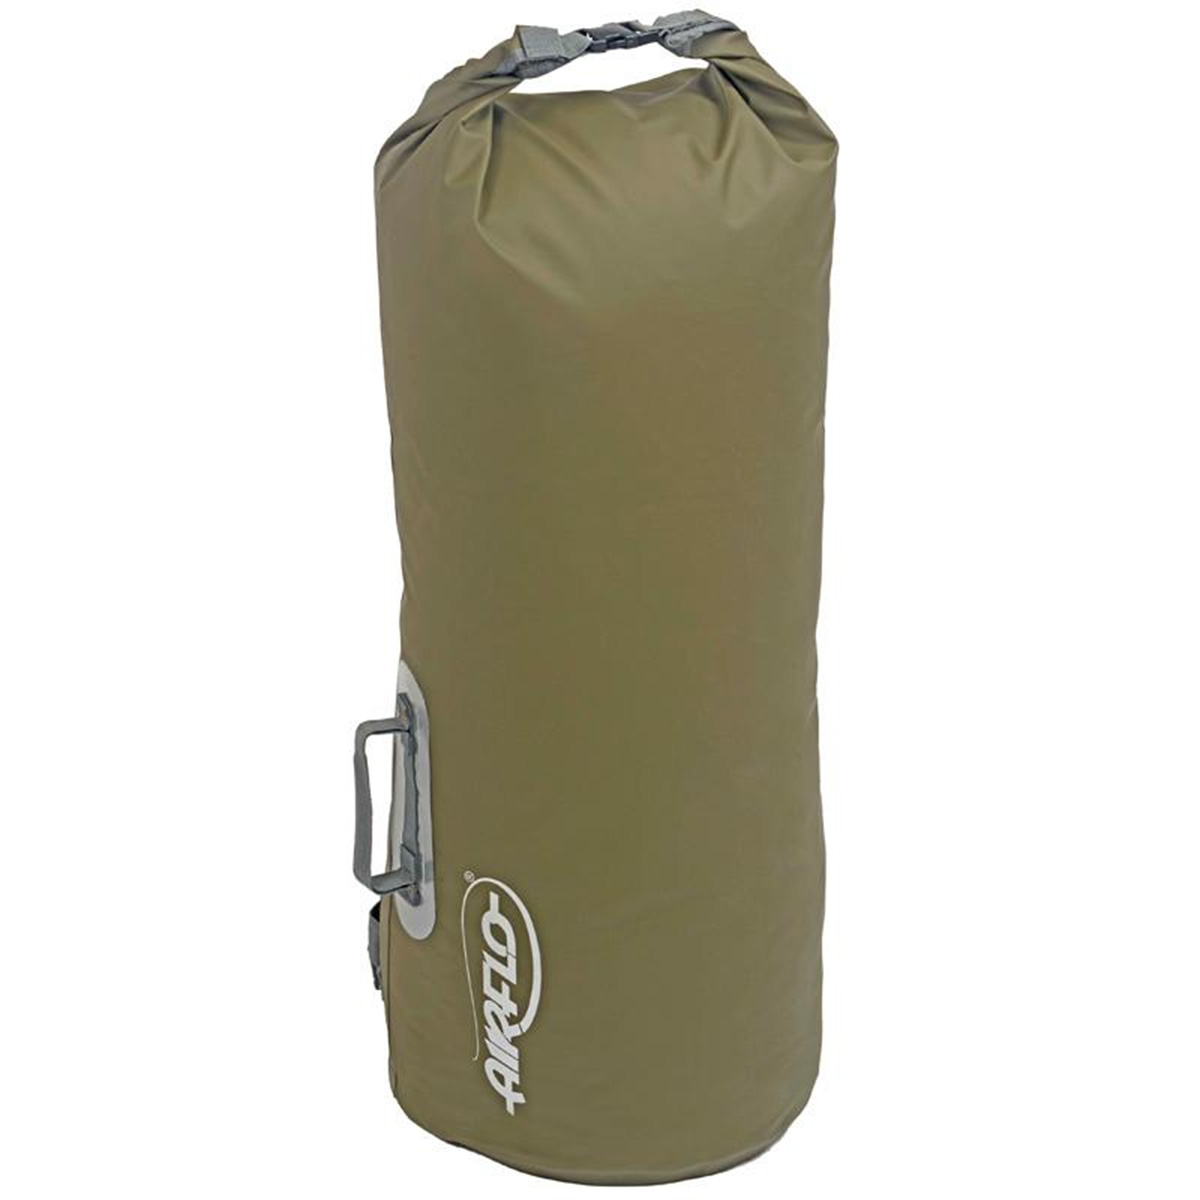 Airflo Fly Dri 60 litre Roll Top Back Pack Tube